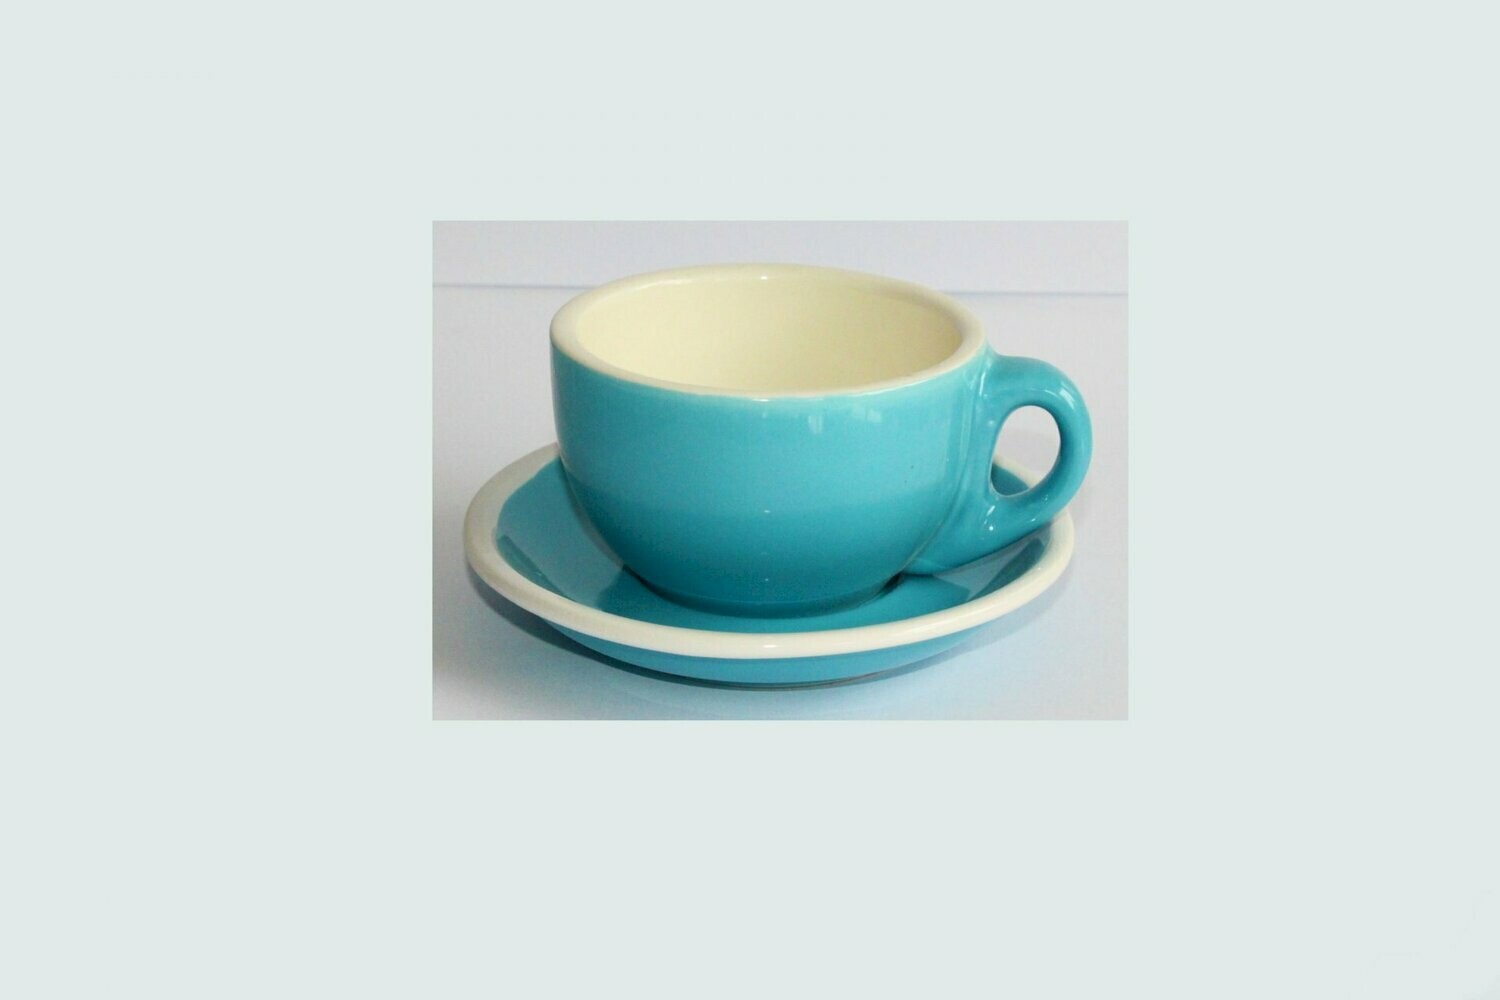 Ceramic cup and dish